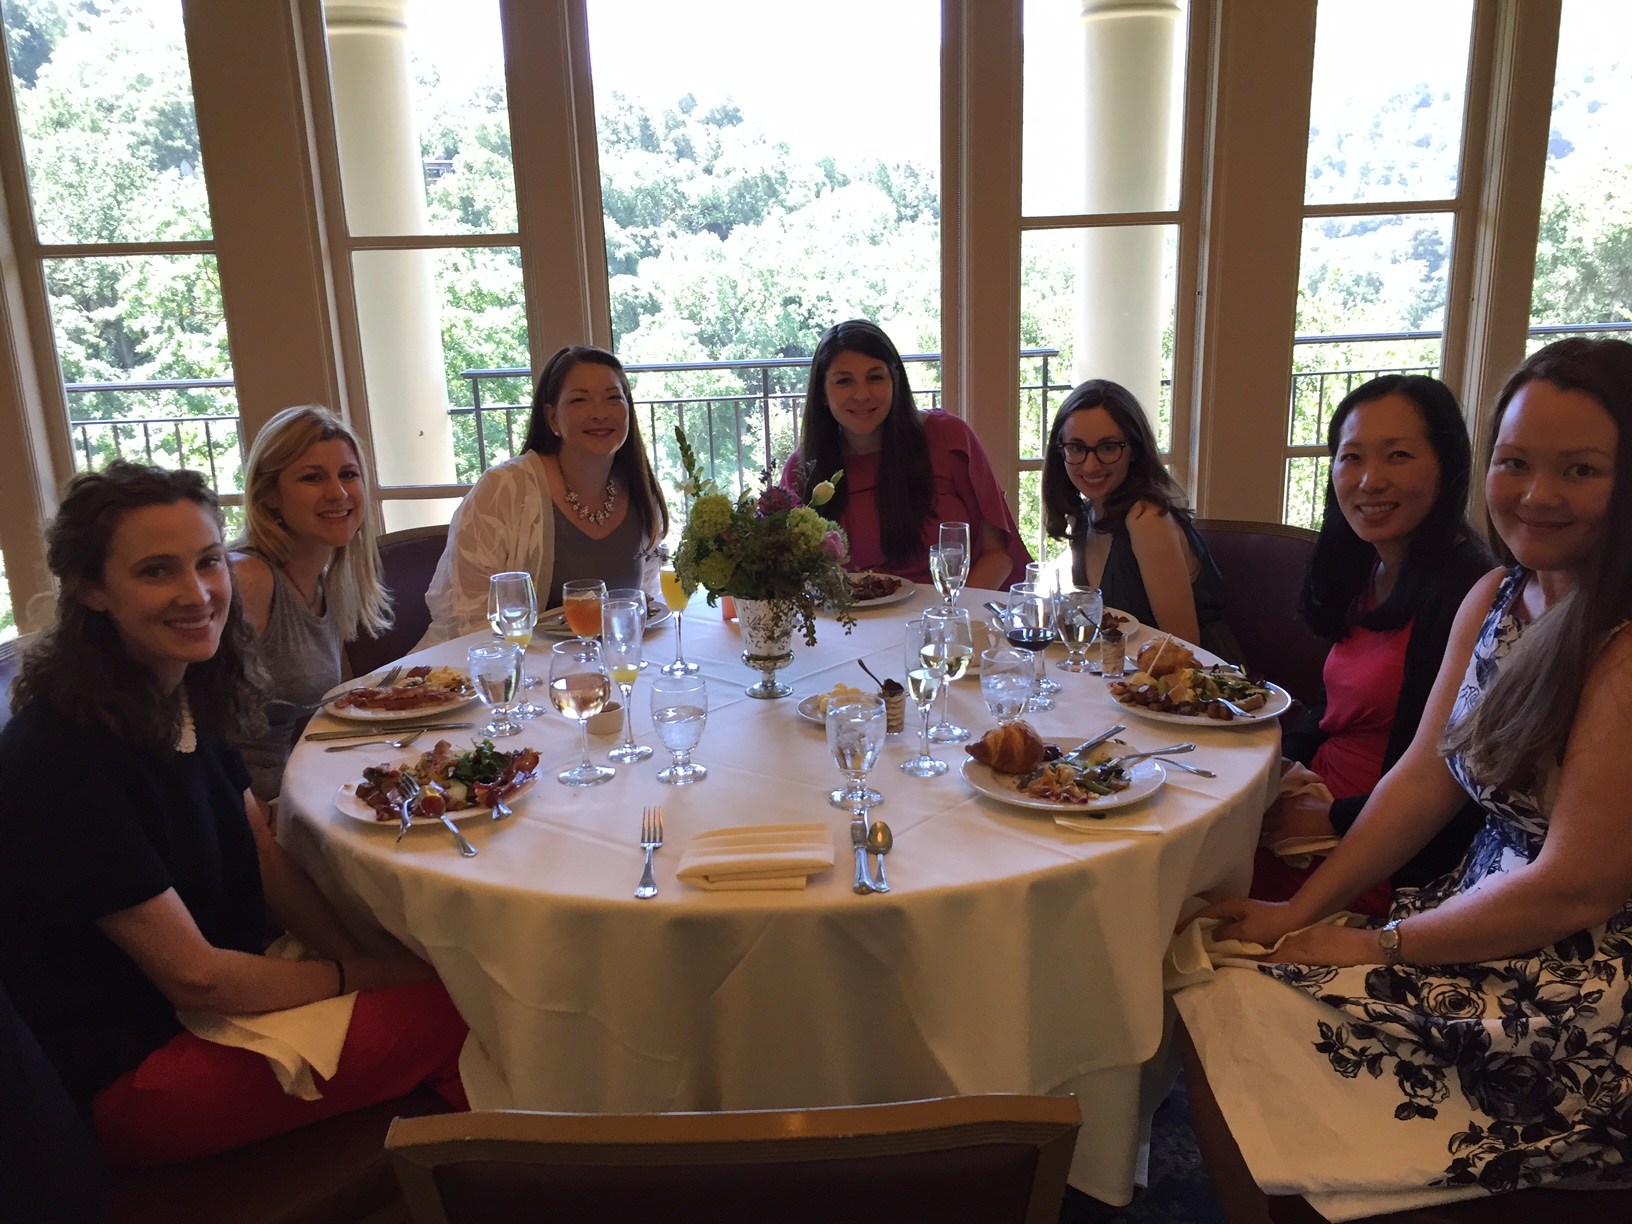 Mother's Day Brunch at Orinda Country Club